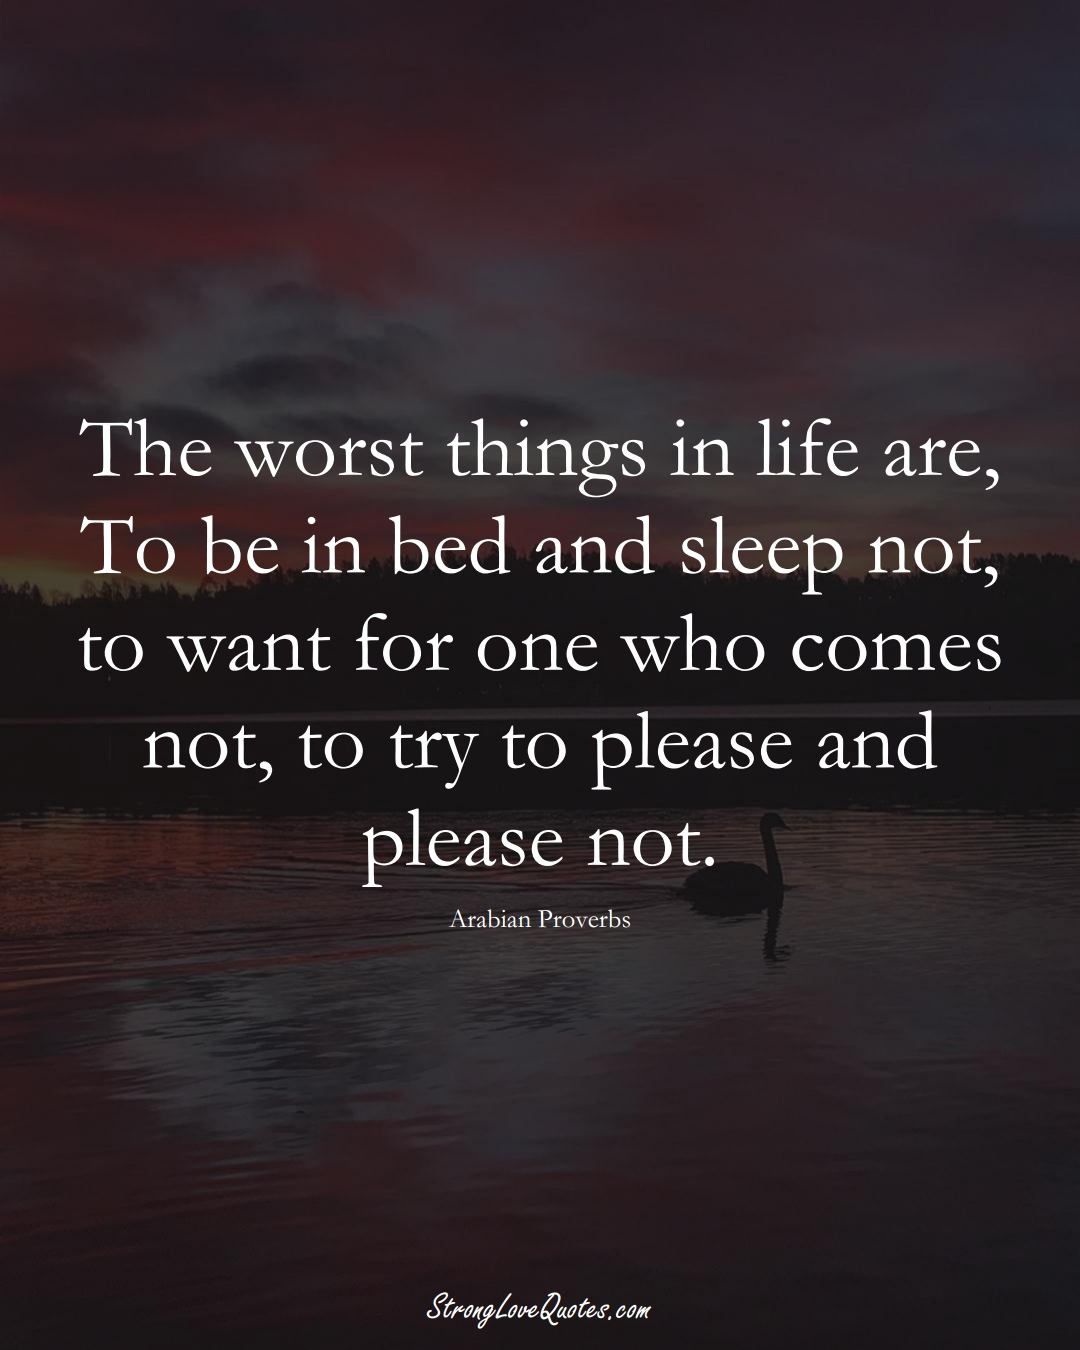 The worst things in life are, To be in bed and sleep not, to want for one who comes not, to try to please and please not. (Arabian Sayings);  #aVarietyofCulturesSayings